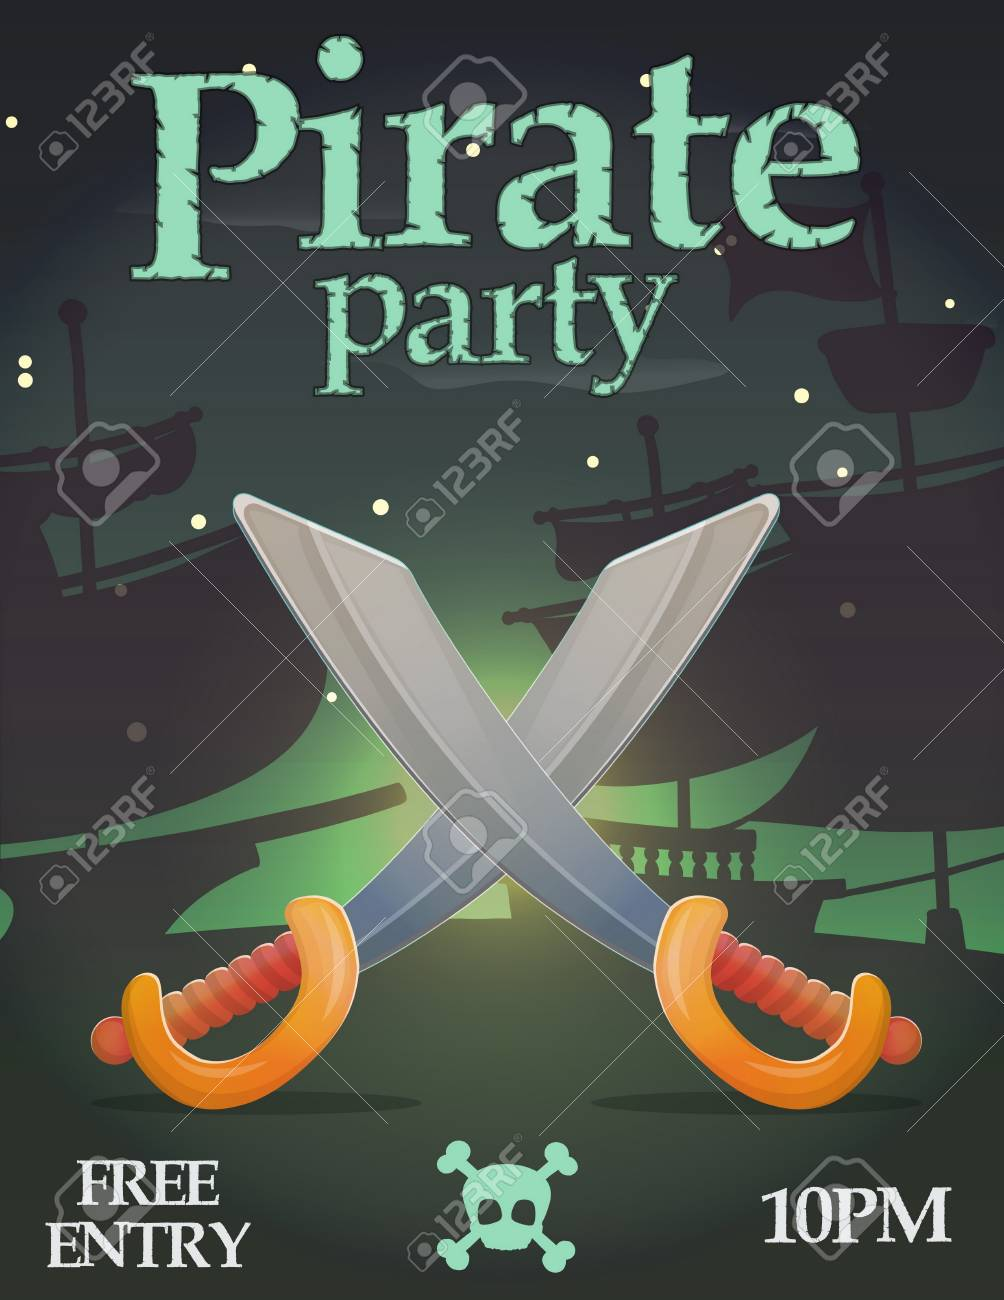 Pirate Party Invitation Celebration Card Template Deadly Weapon Sword Saber Crossed In Front Of